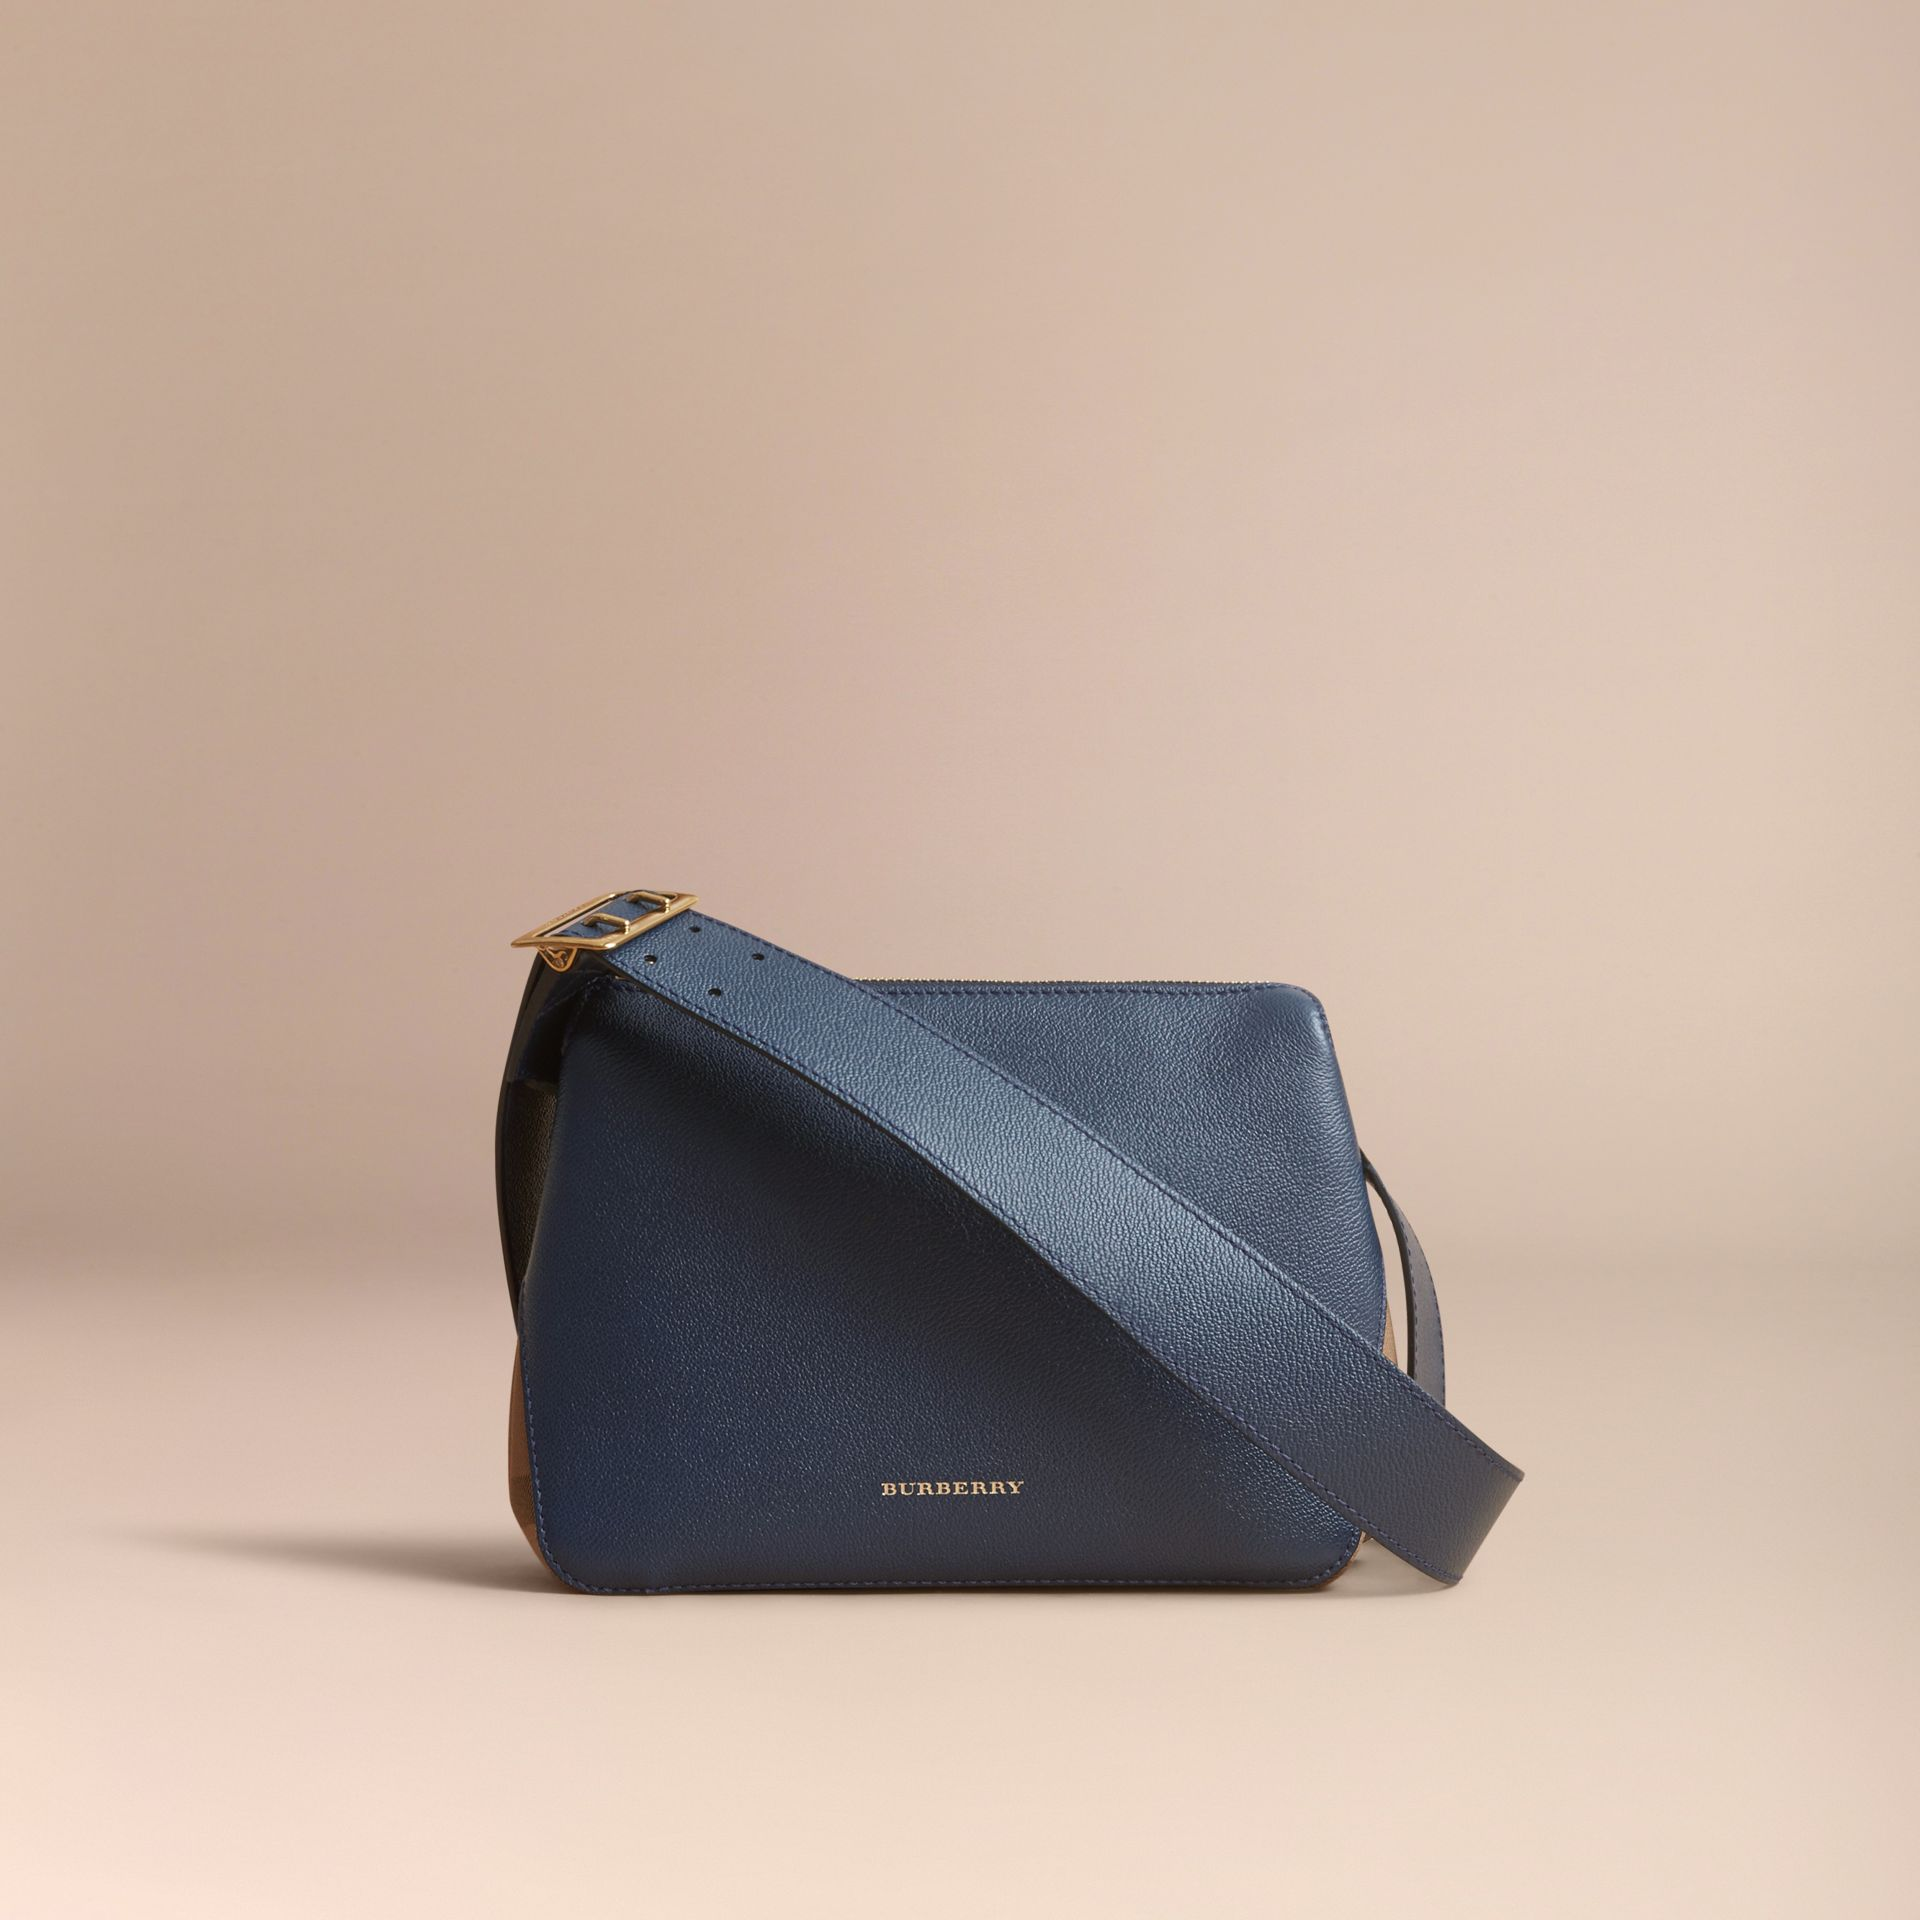 Buckle Detail Leather and House Check Crossbody Bag in Blue Carbon - Women | Burberry Australia - gallery image 7